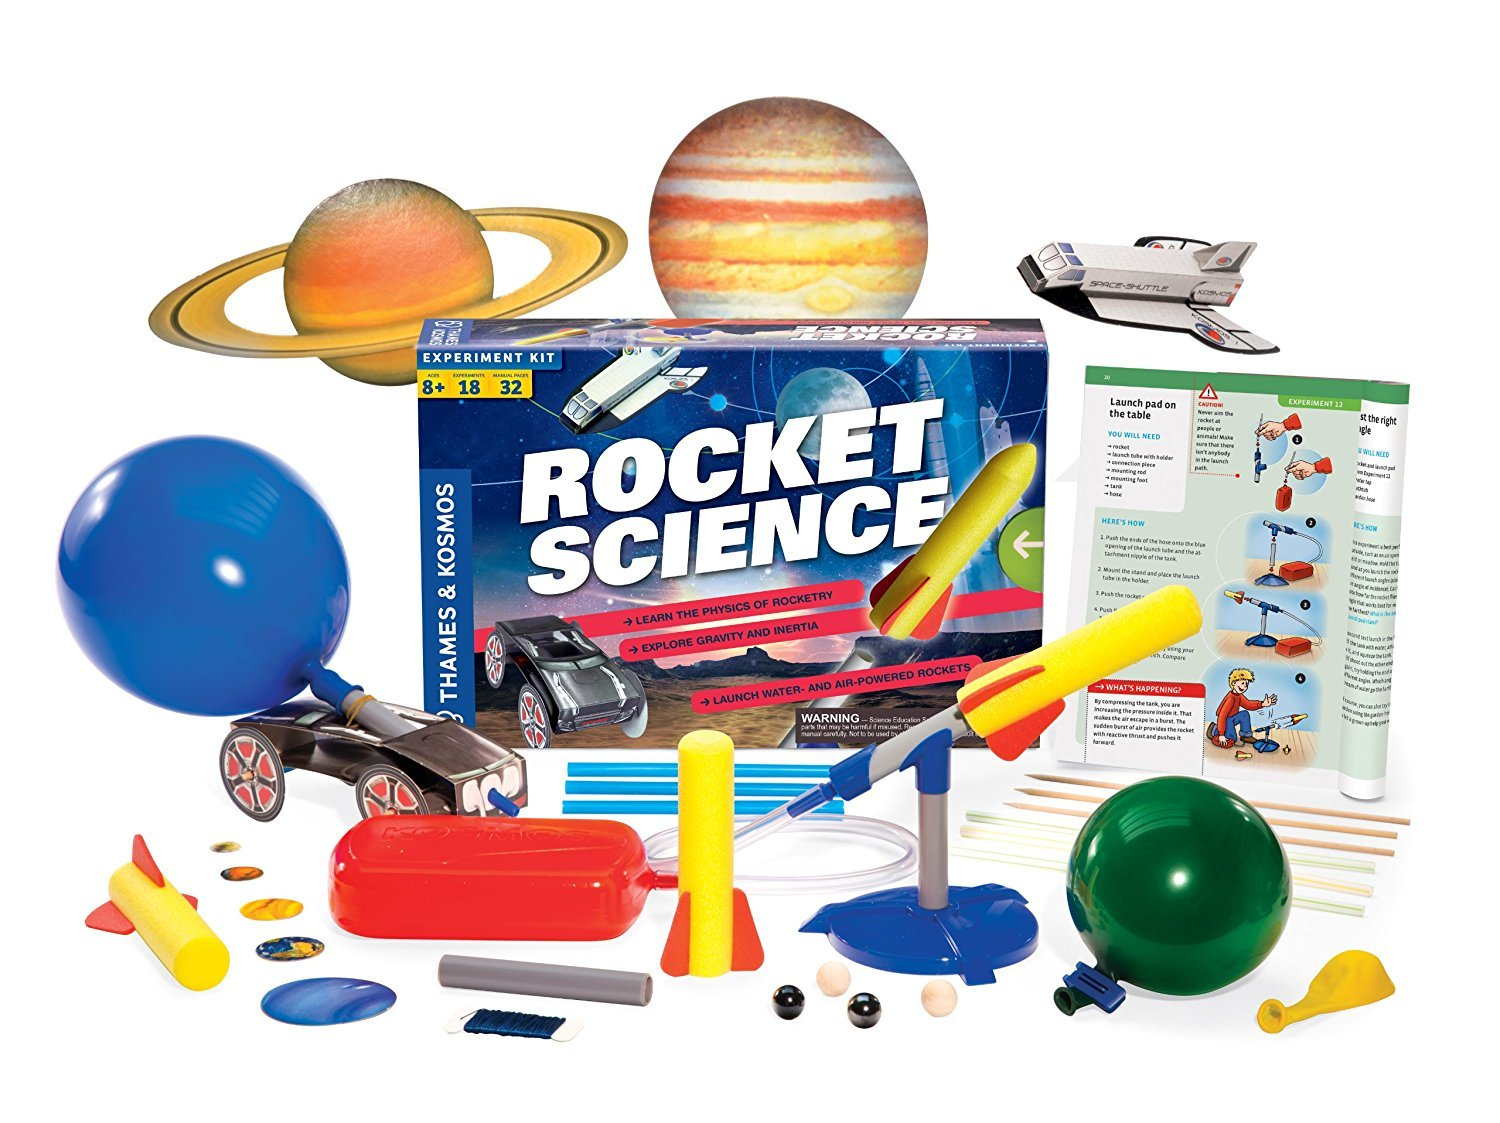 Science Kits For Kids, Thames And Kosmos Stomp On Rocket Experiment Science Kits by Thames & Kosmos